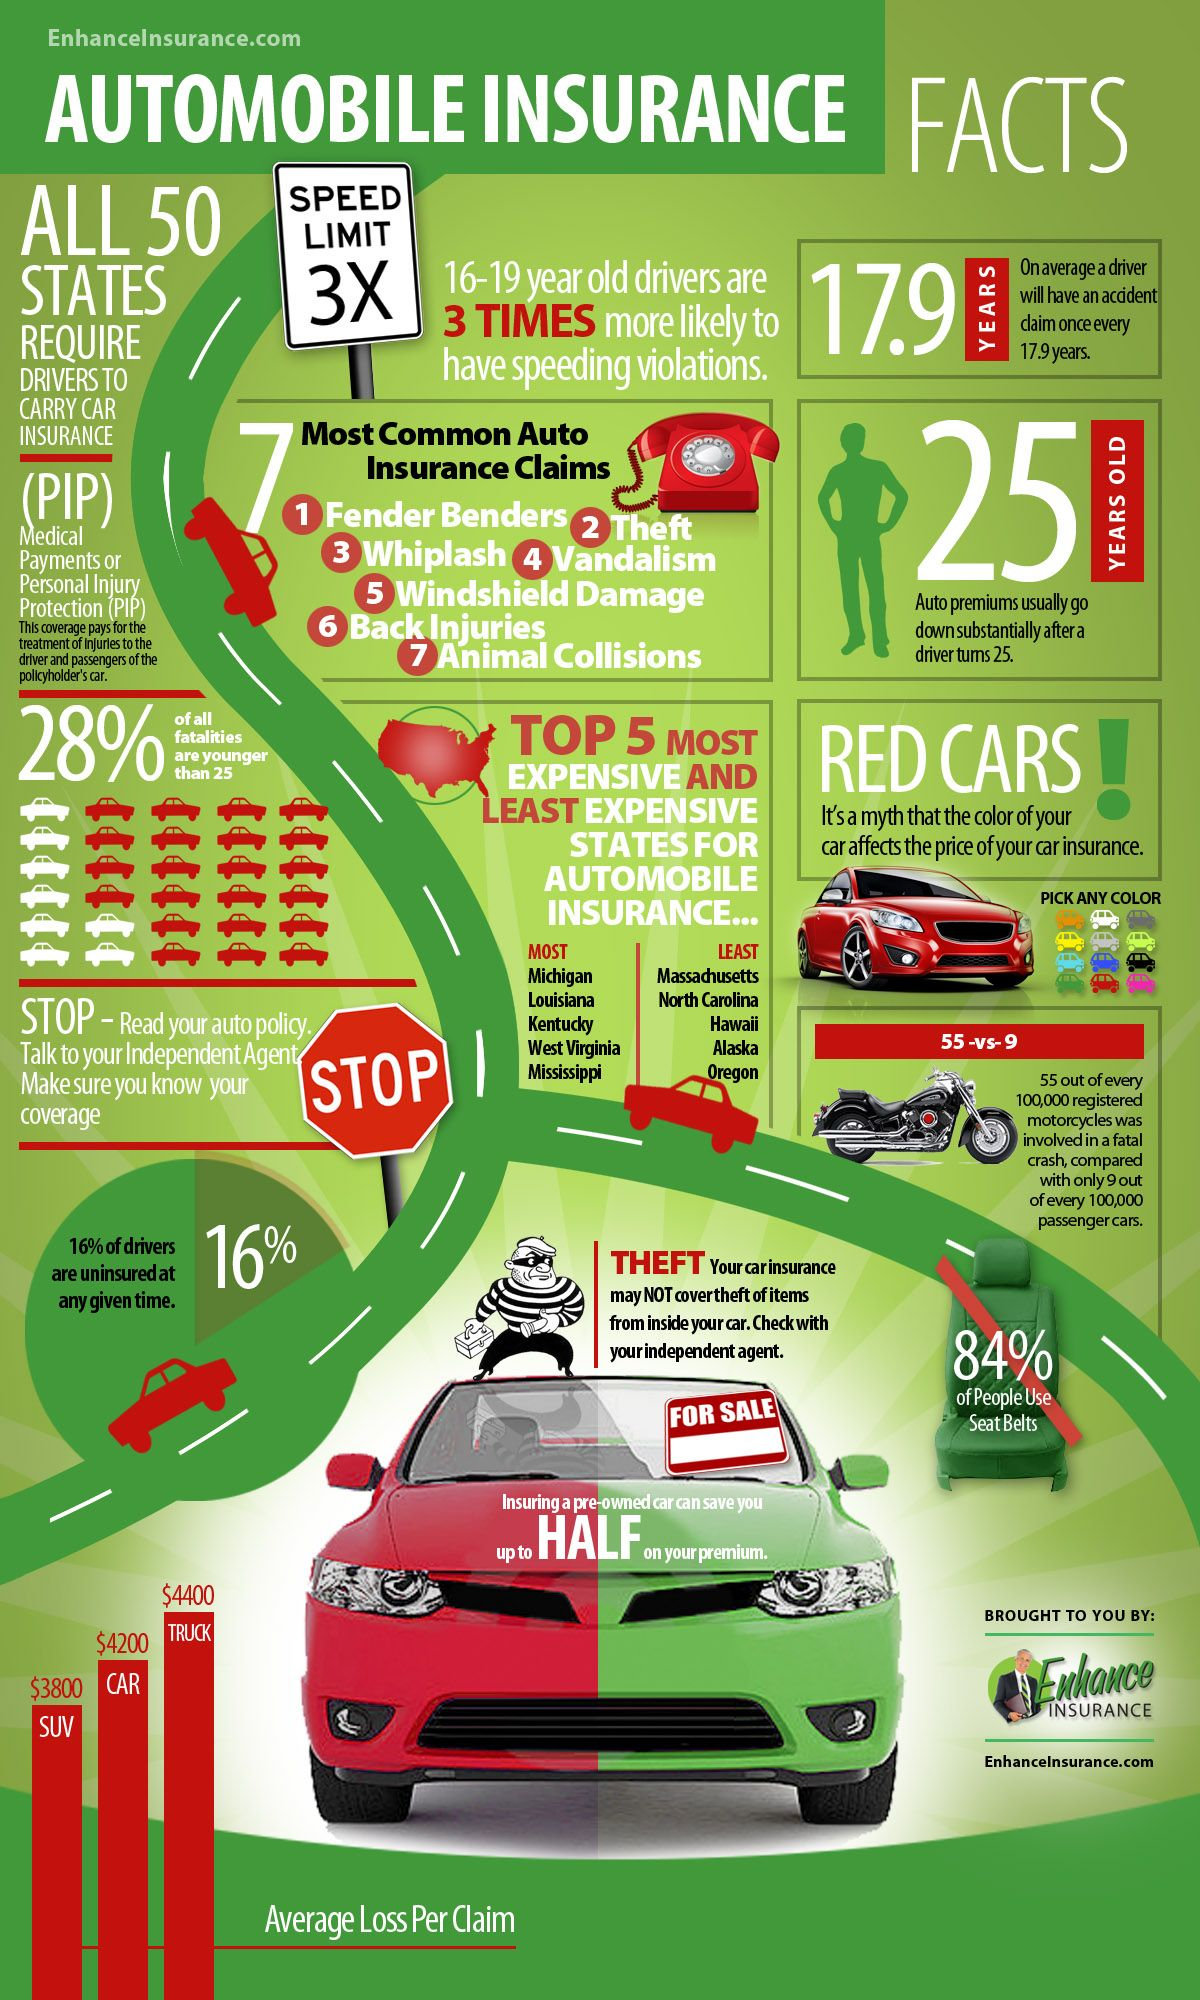 Discover the myths and facts surrounding car and automobile insurance policies. Infographic brought to you by Enhance Insurance.